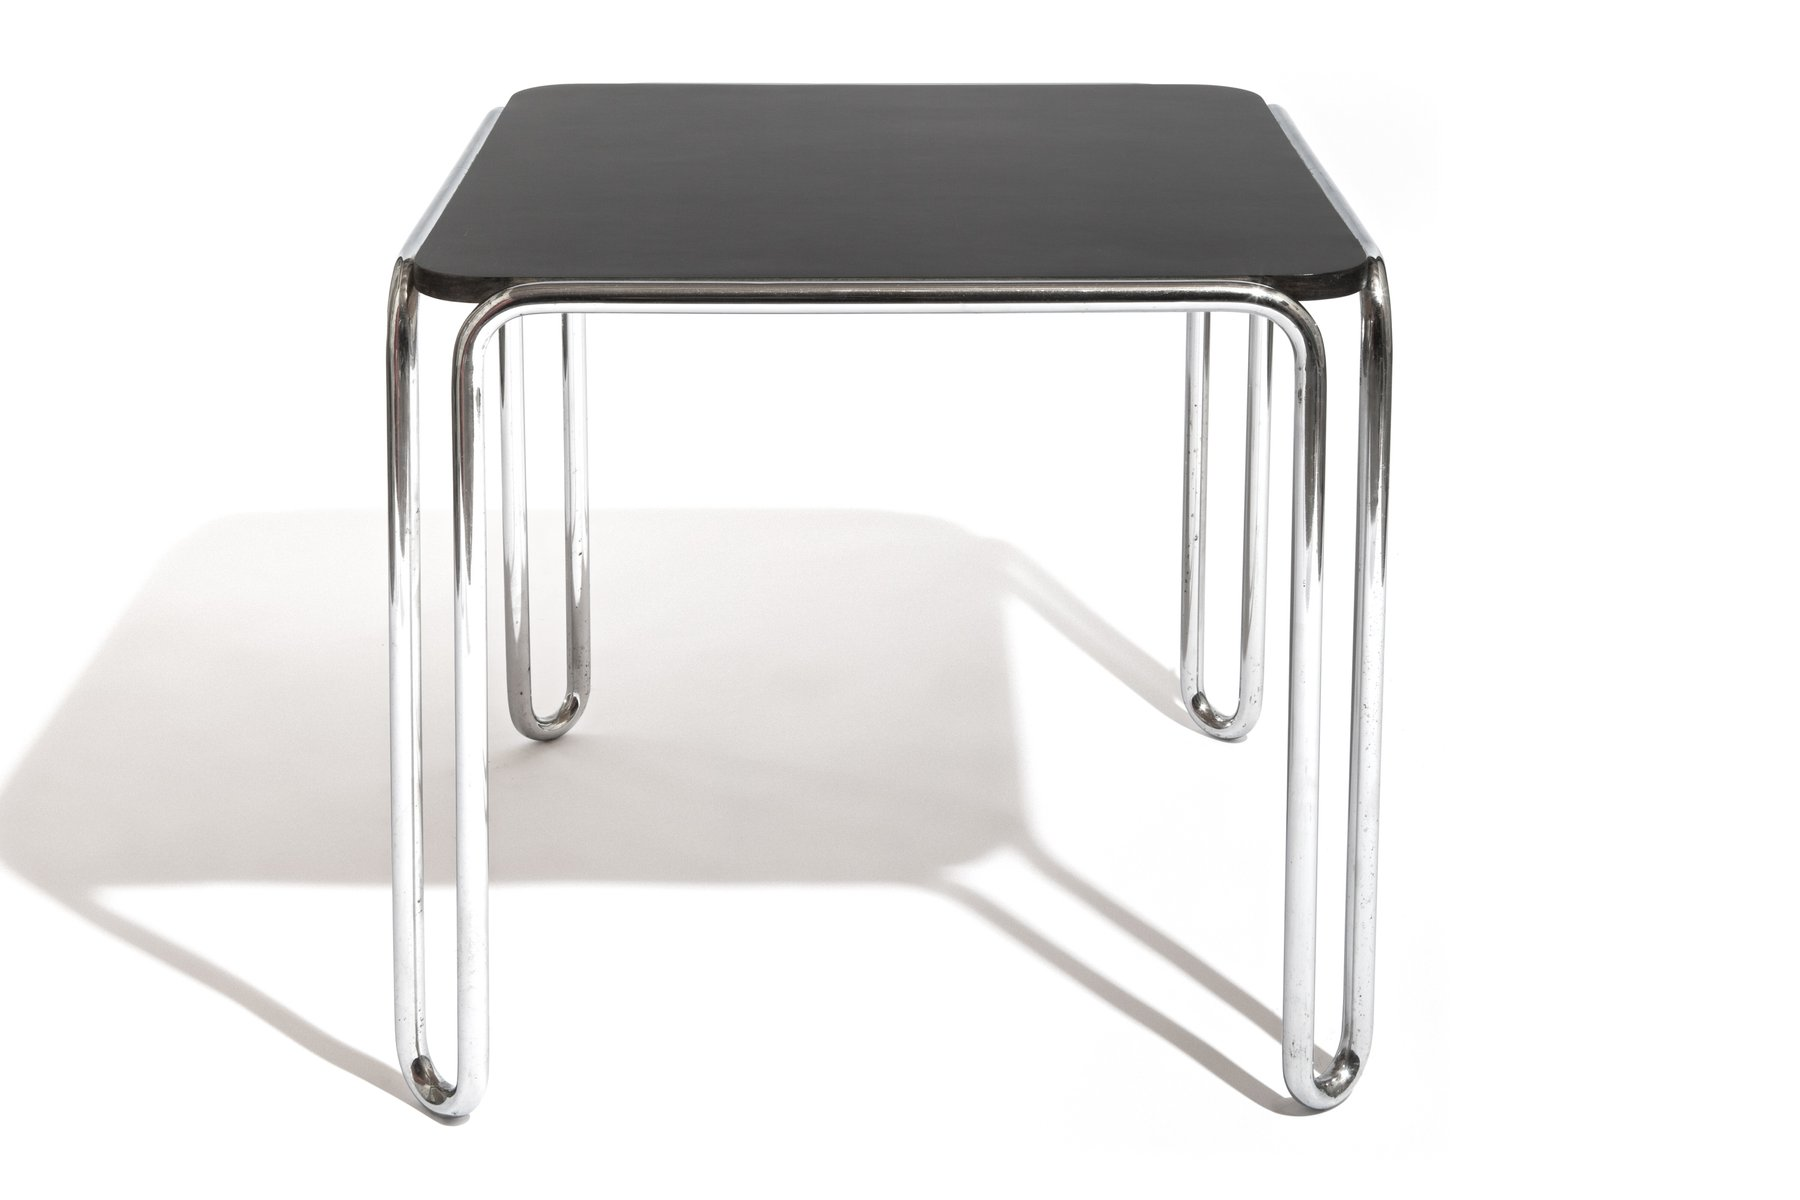 b10 table by marcel breuer 1940s for sale at pamono. Black Bedroom Furniture Sets. Home Design Ideas